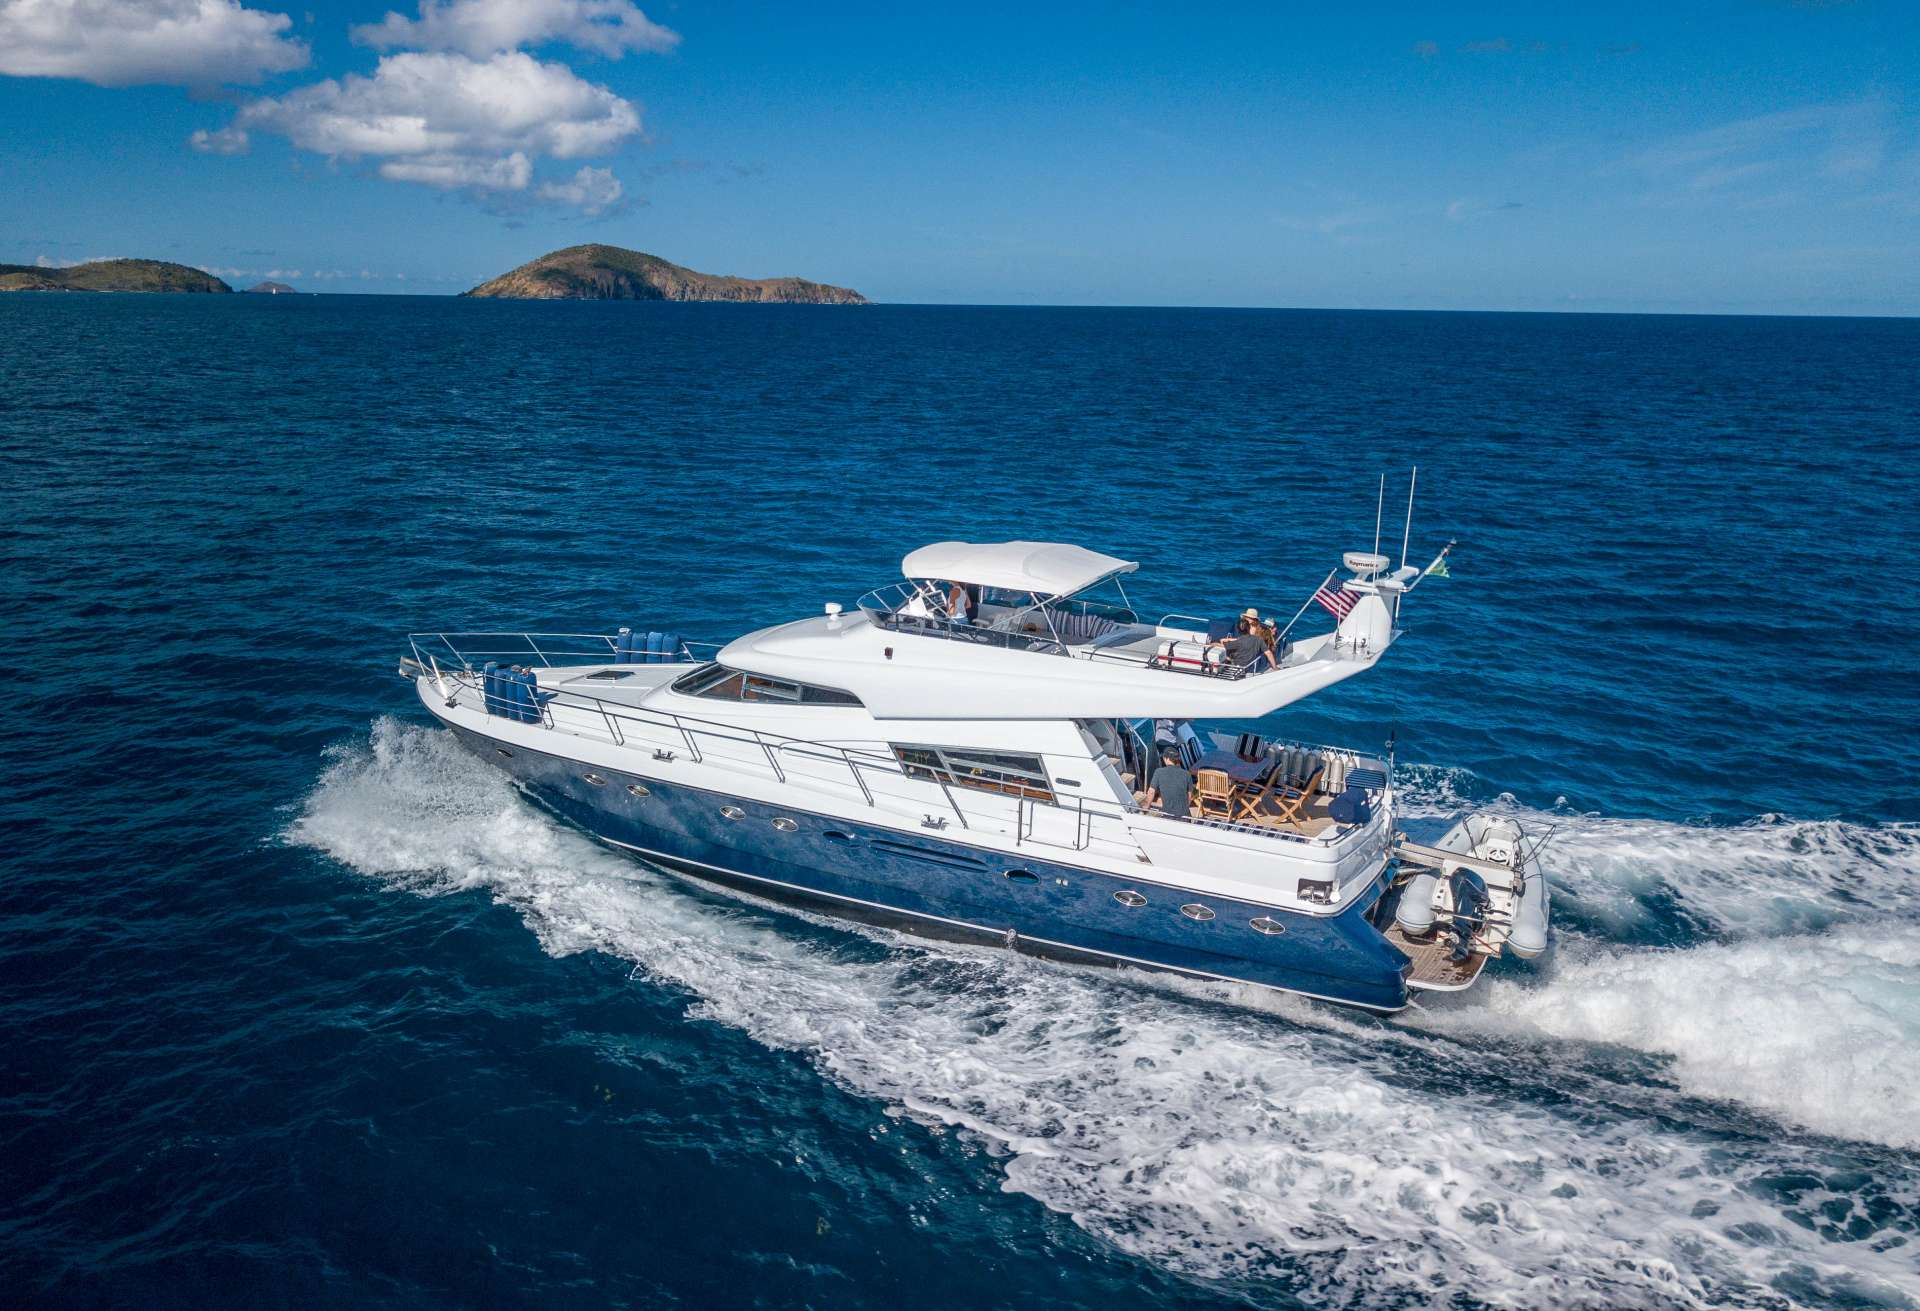 Main image of COOL BREEZE yacht